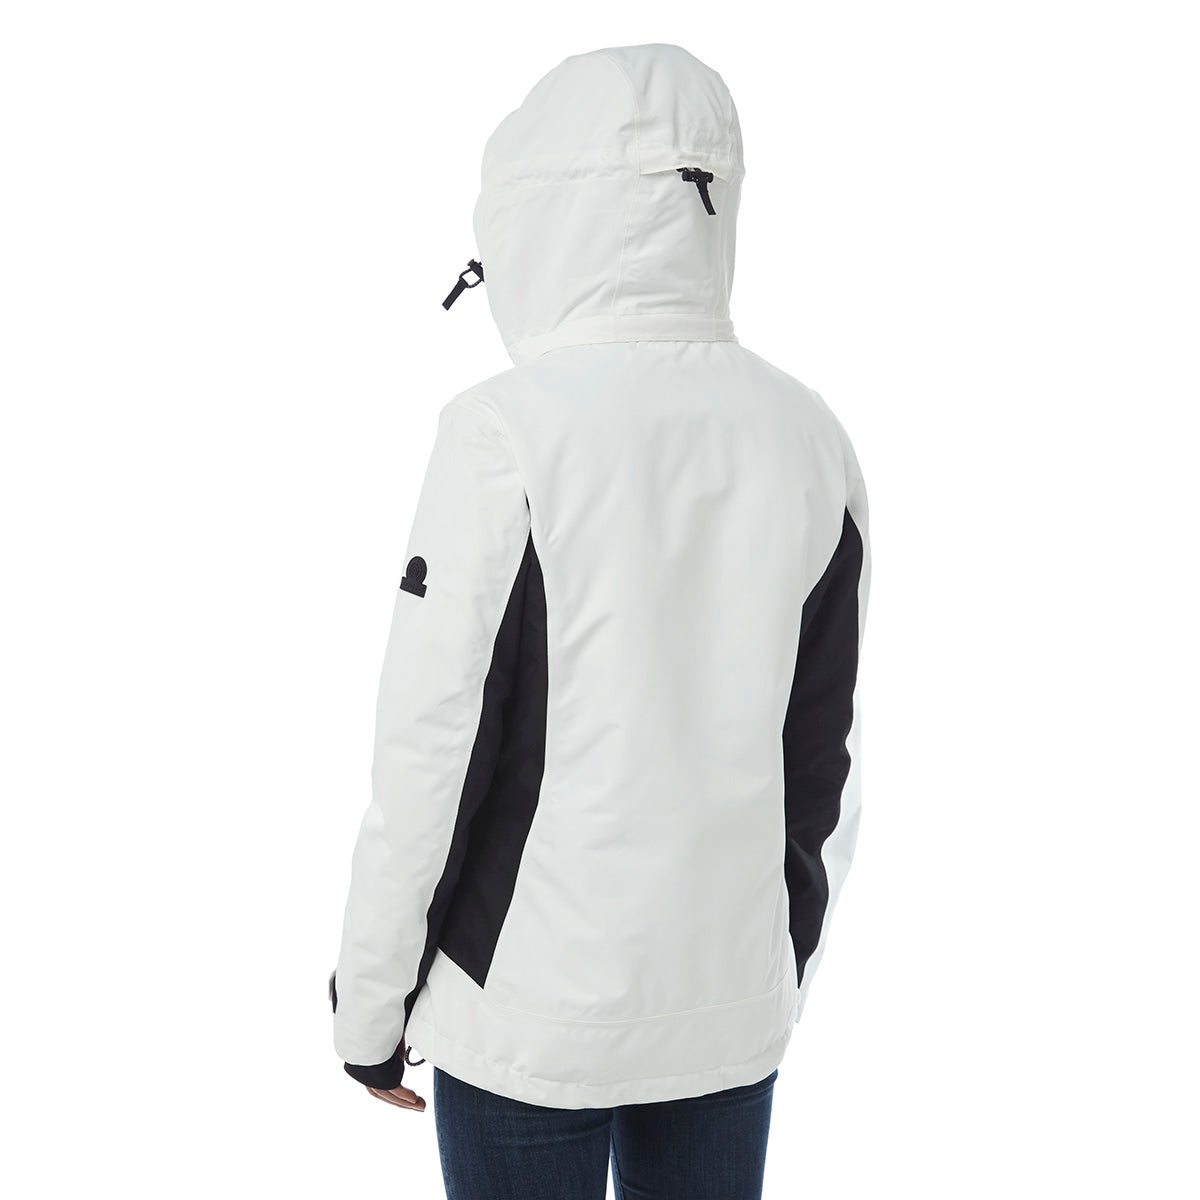 Abbey Womens Waterproof Insulated Ski Jacket - White/Black image 4